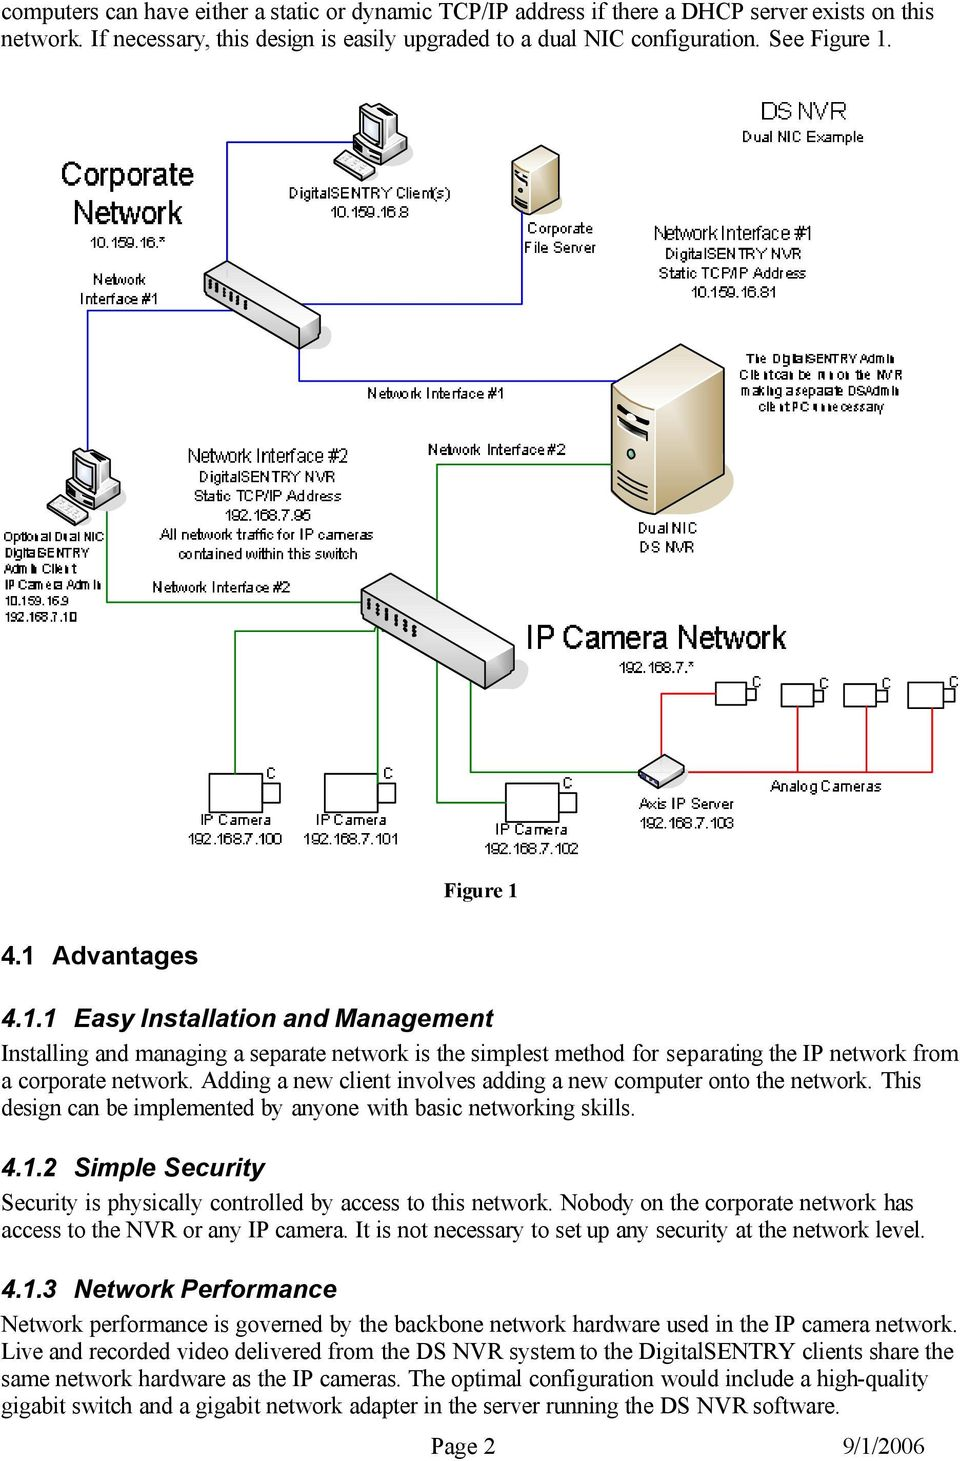 Ds Nvr Prospective Network Configurations Pdf Wiring Diagram Adding A New Client Involves Computer Onto The This Design Can